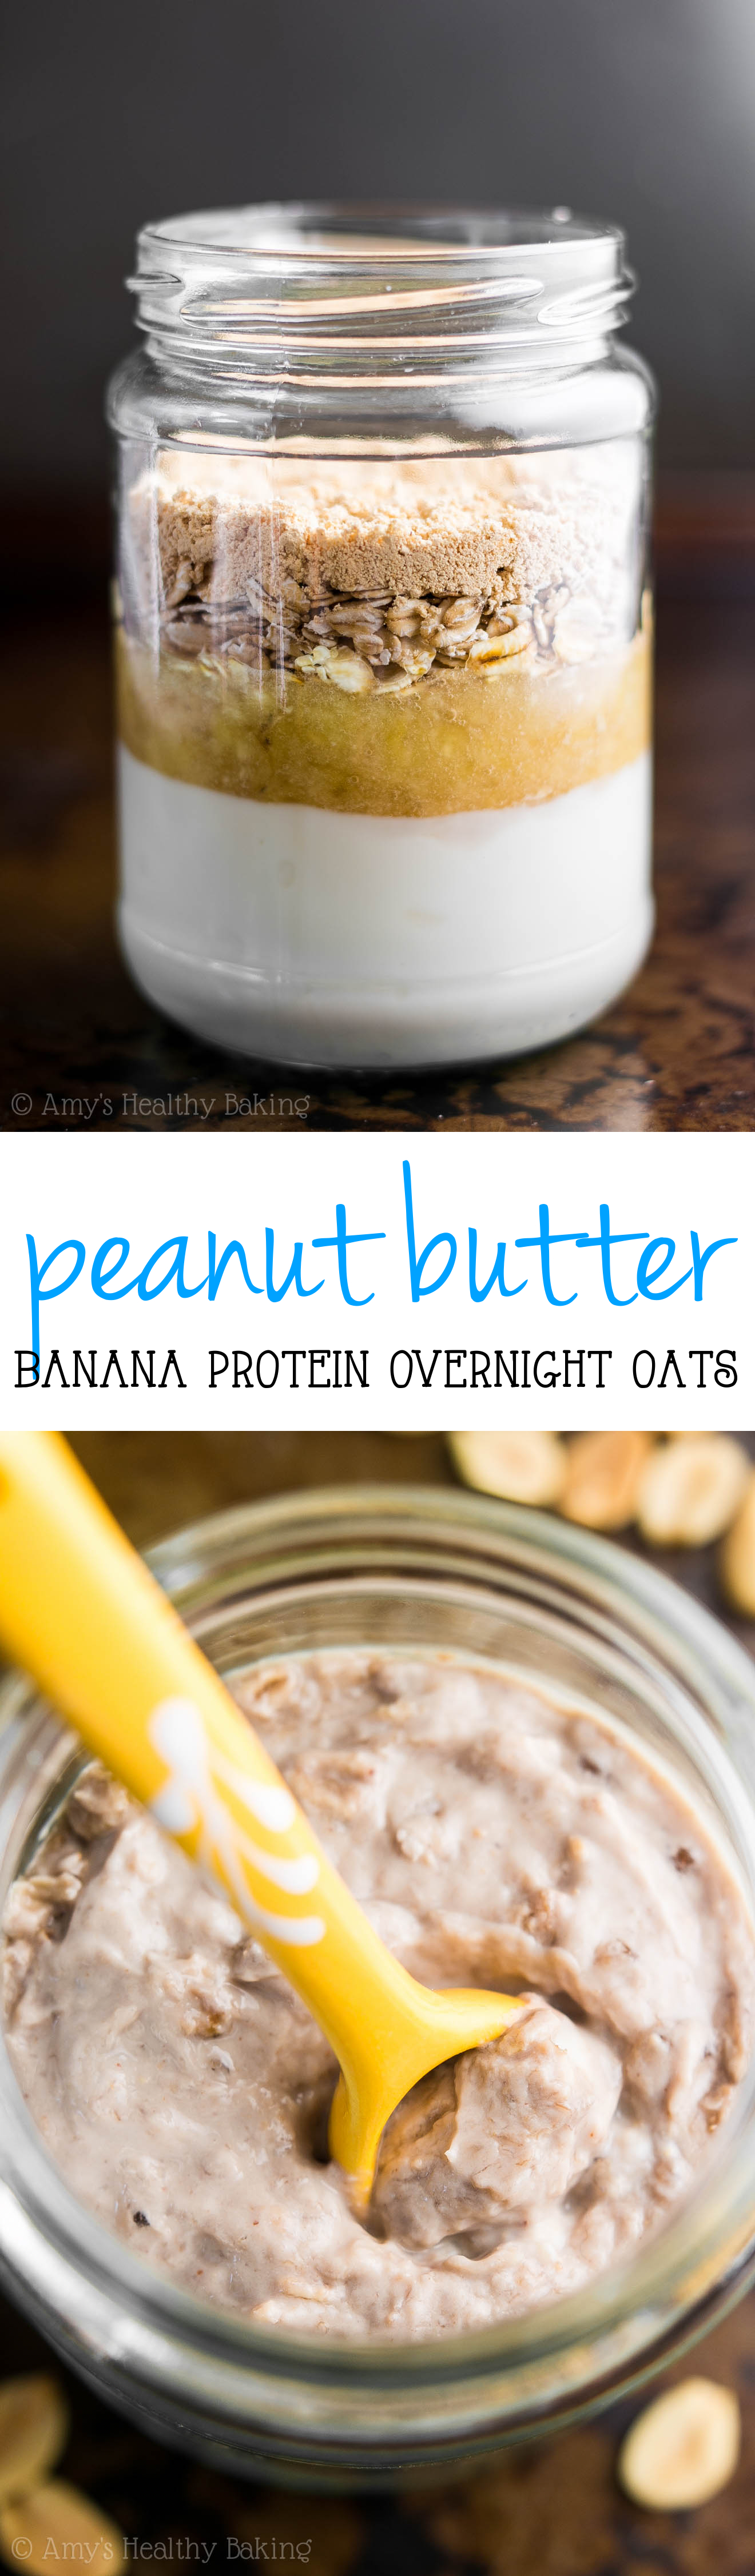 Peanut Butter Banana Protein Overnight Oats -- just 5 healthy ingredients & nearly 19g of protein! My favorite breakfast for busy mornings! SO good!